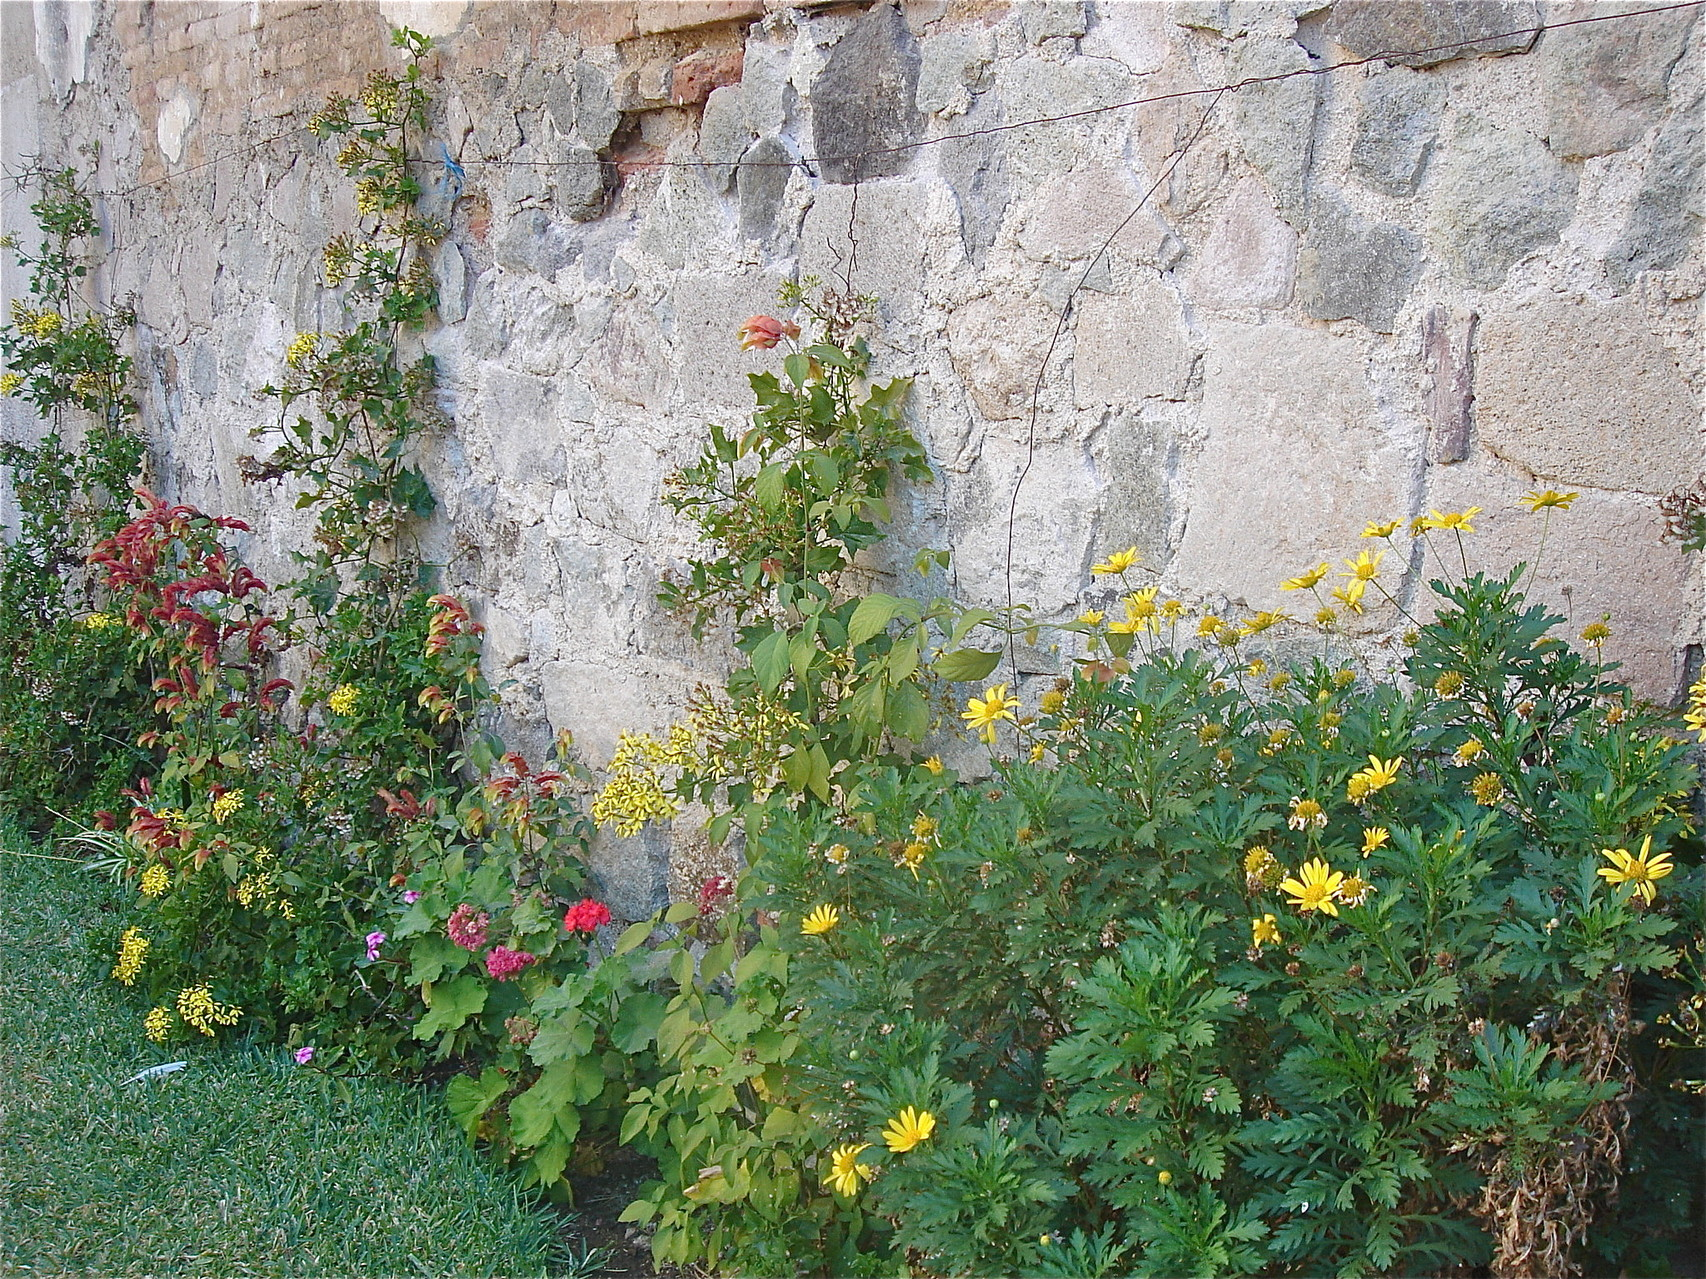 Monastery Walls, beautiful flowers